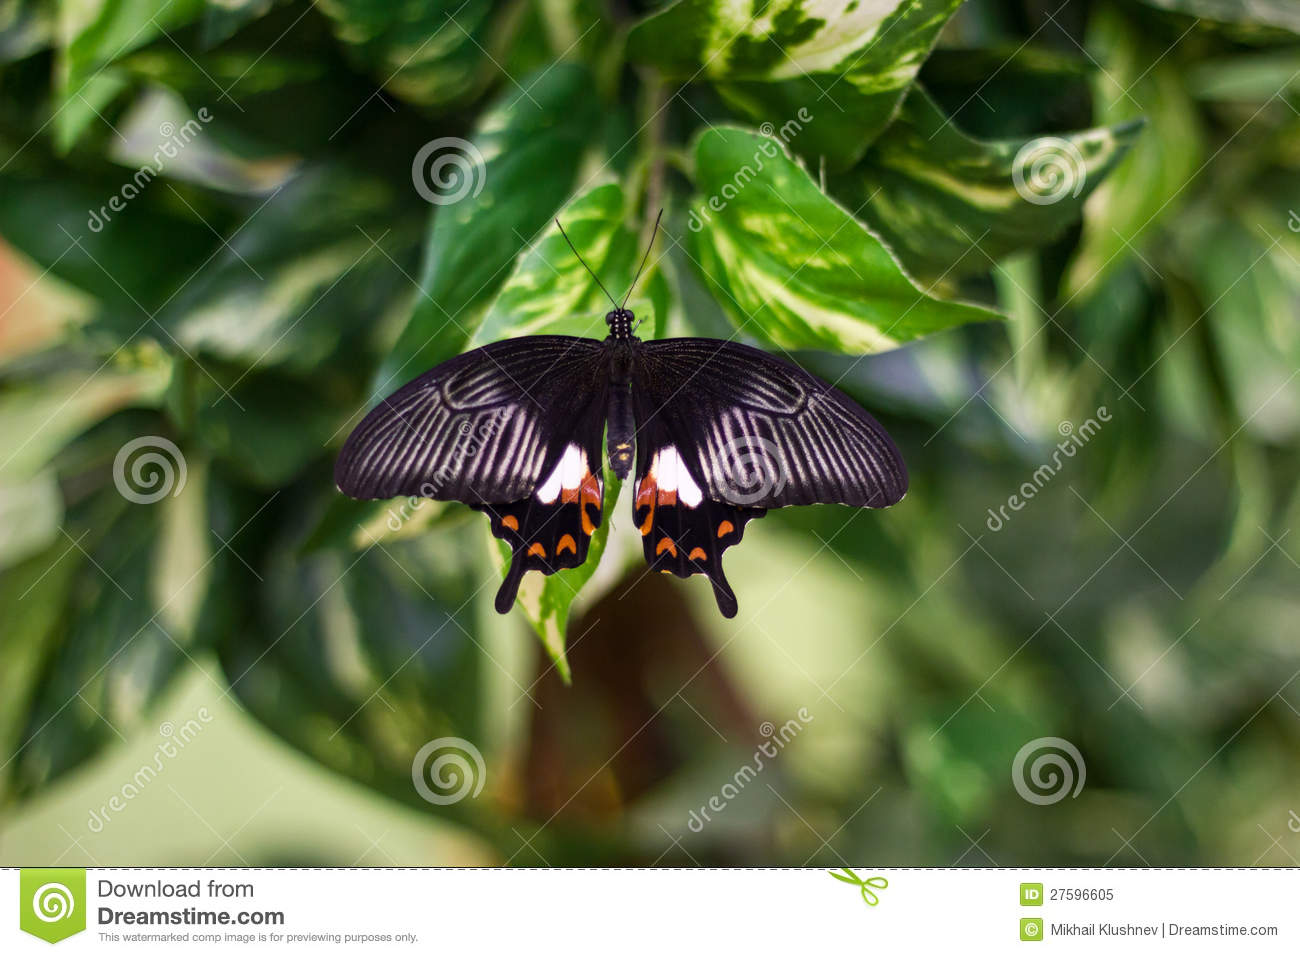 Beauty Butterfly In Nature Royalty Free Stock Photo - Image: 27596605